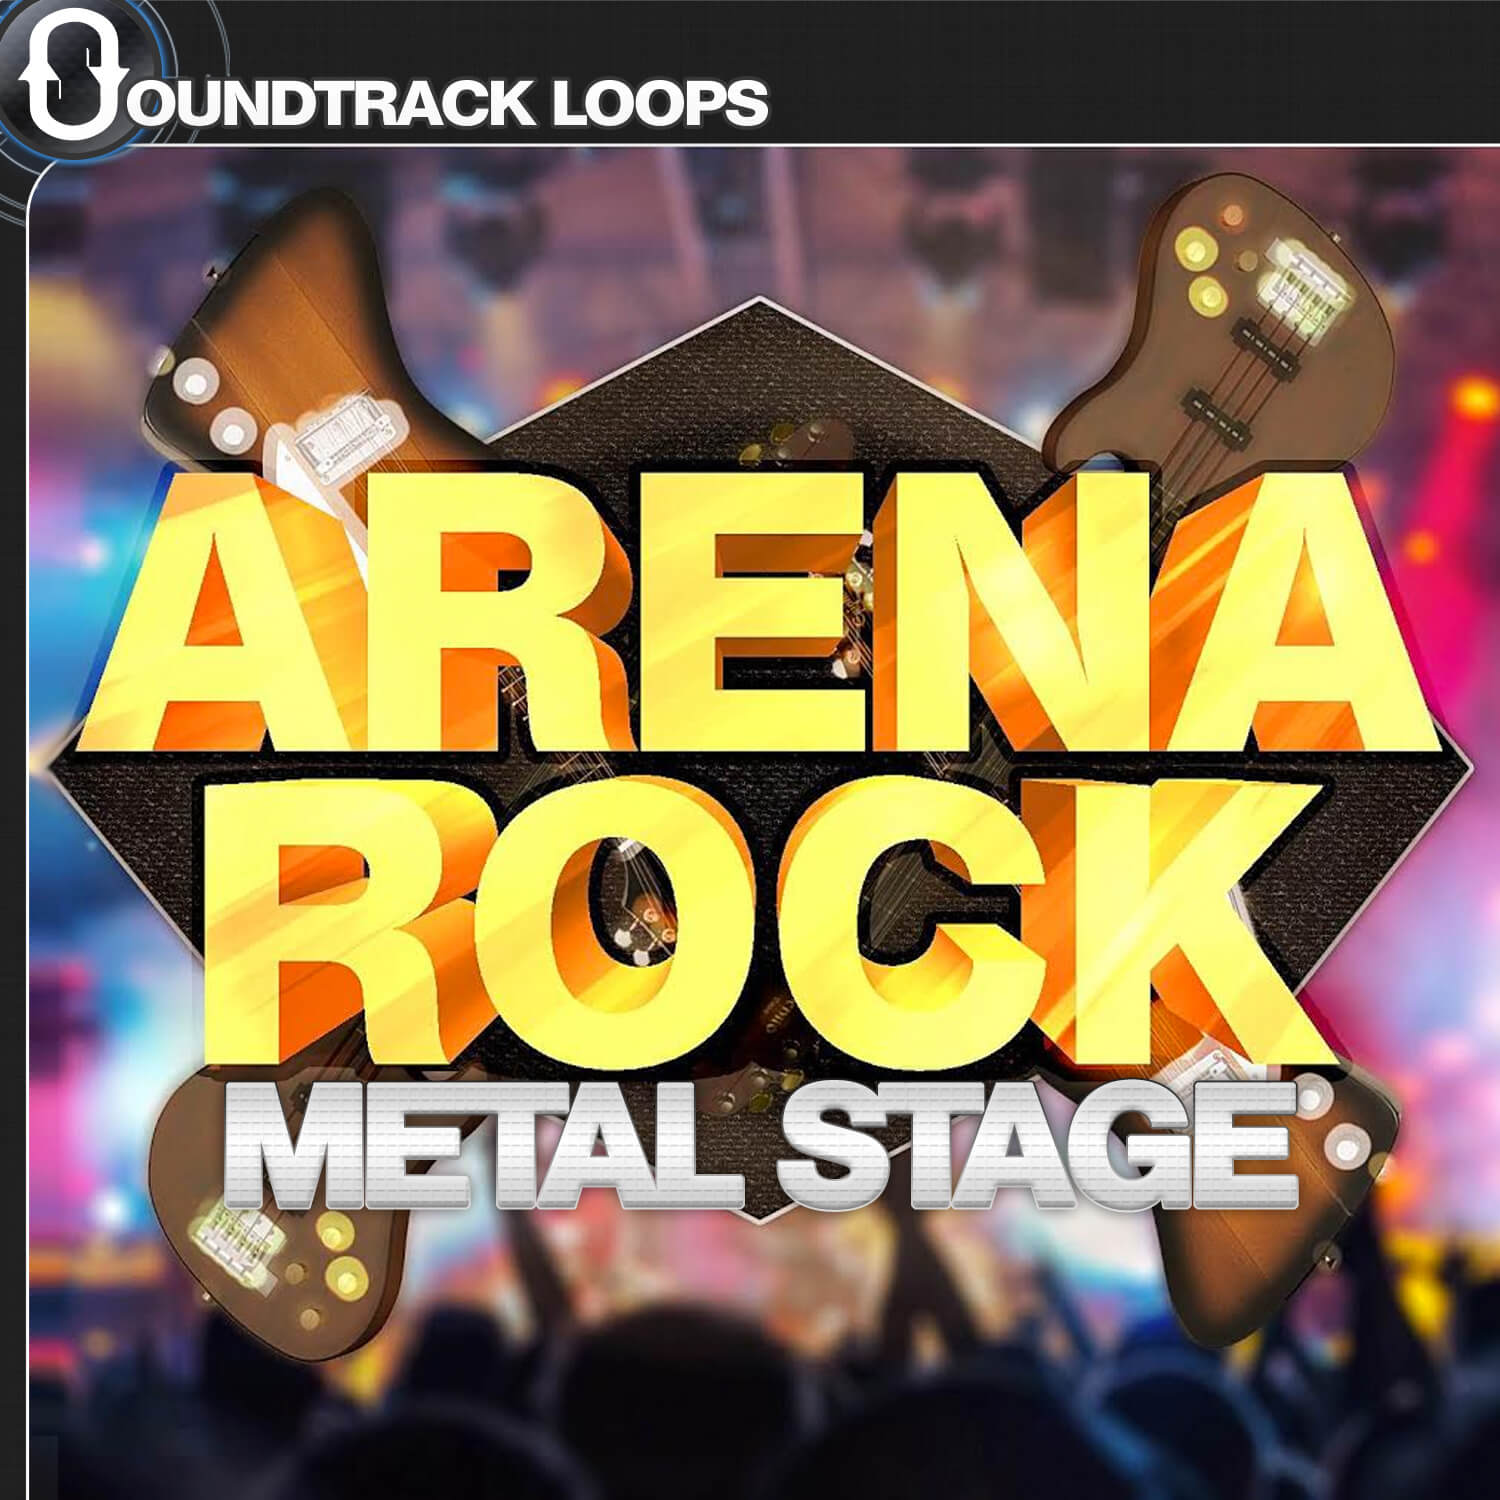 Arena Rock Metal Stage - Hard Rockin' Loops and SoundPack.